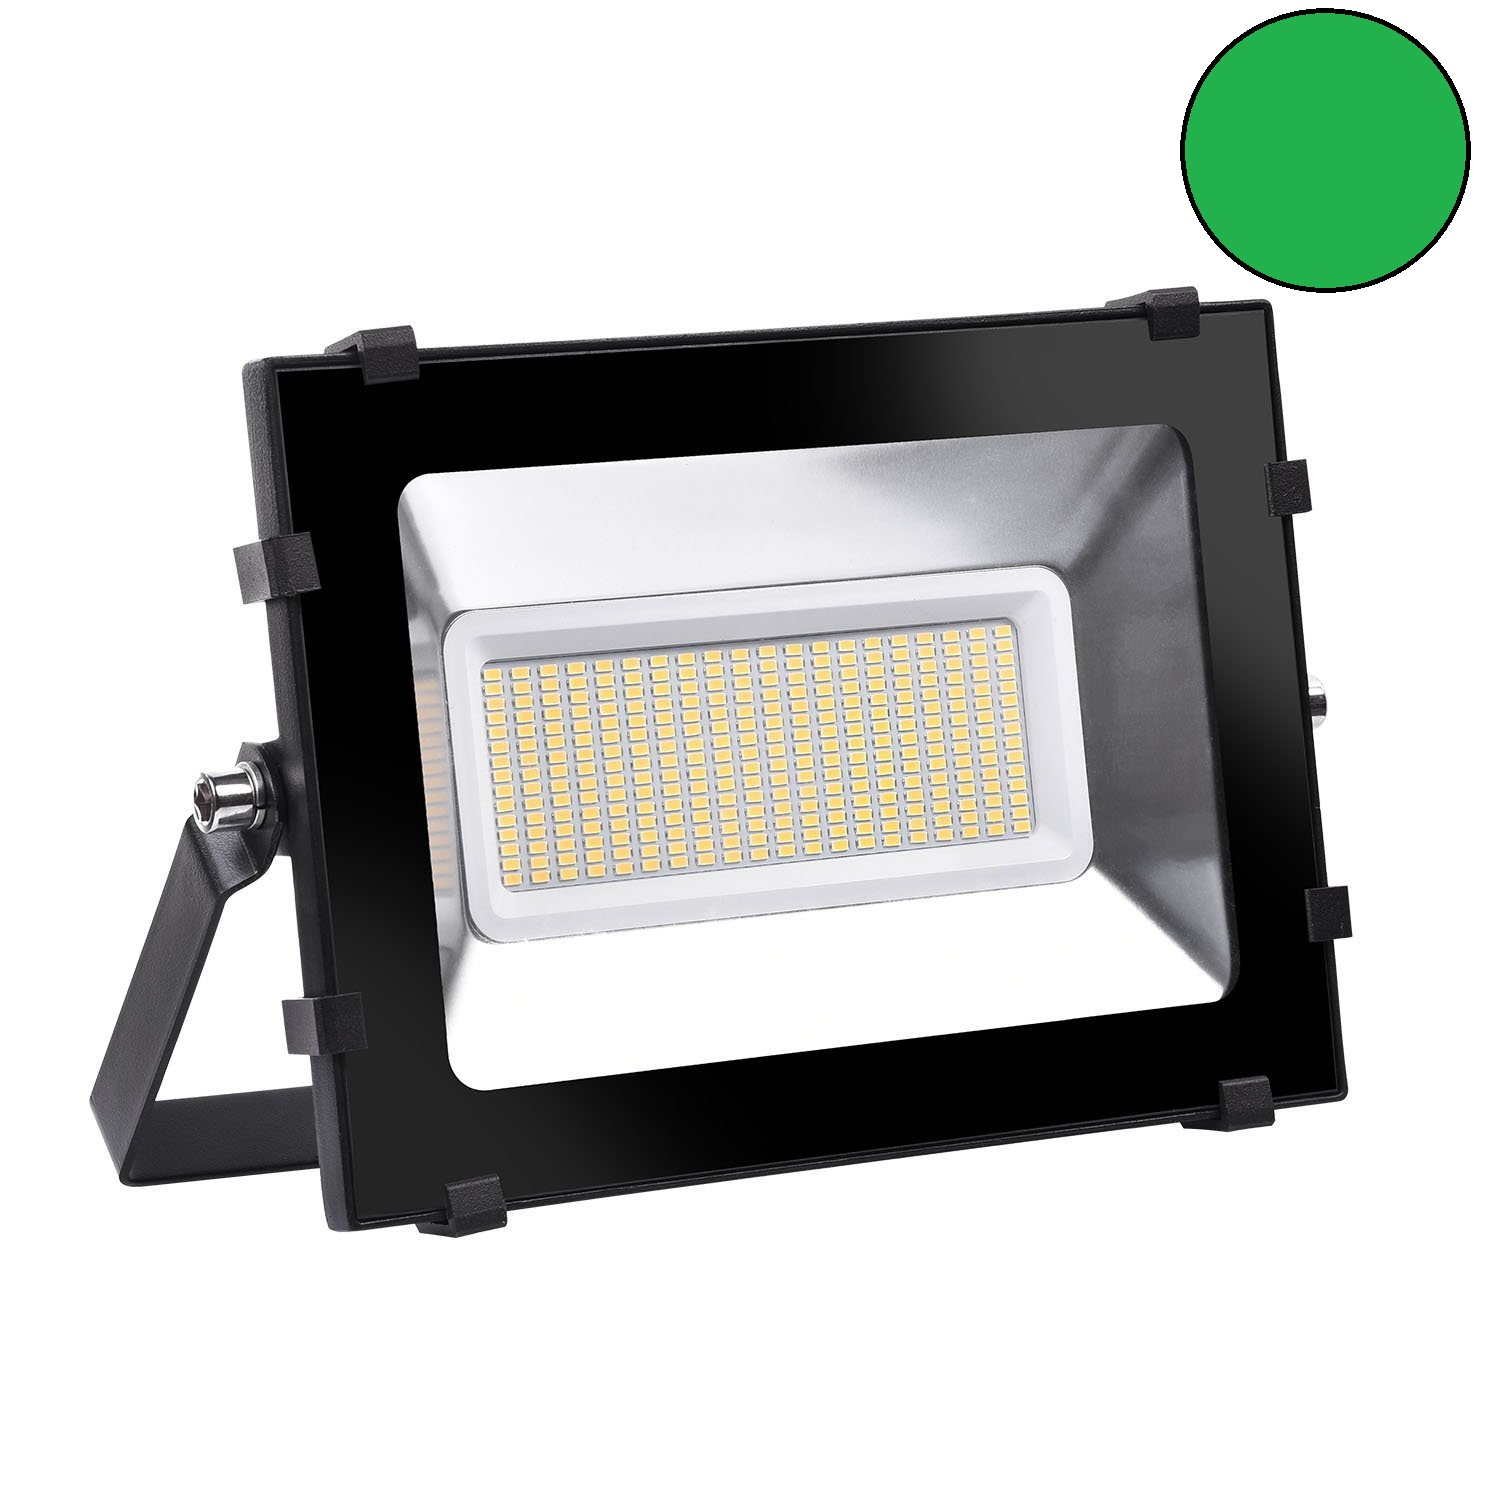 Floodlight led 150 watt groen outdoor for Corrispondenza led watt